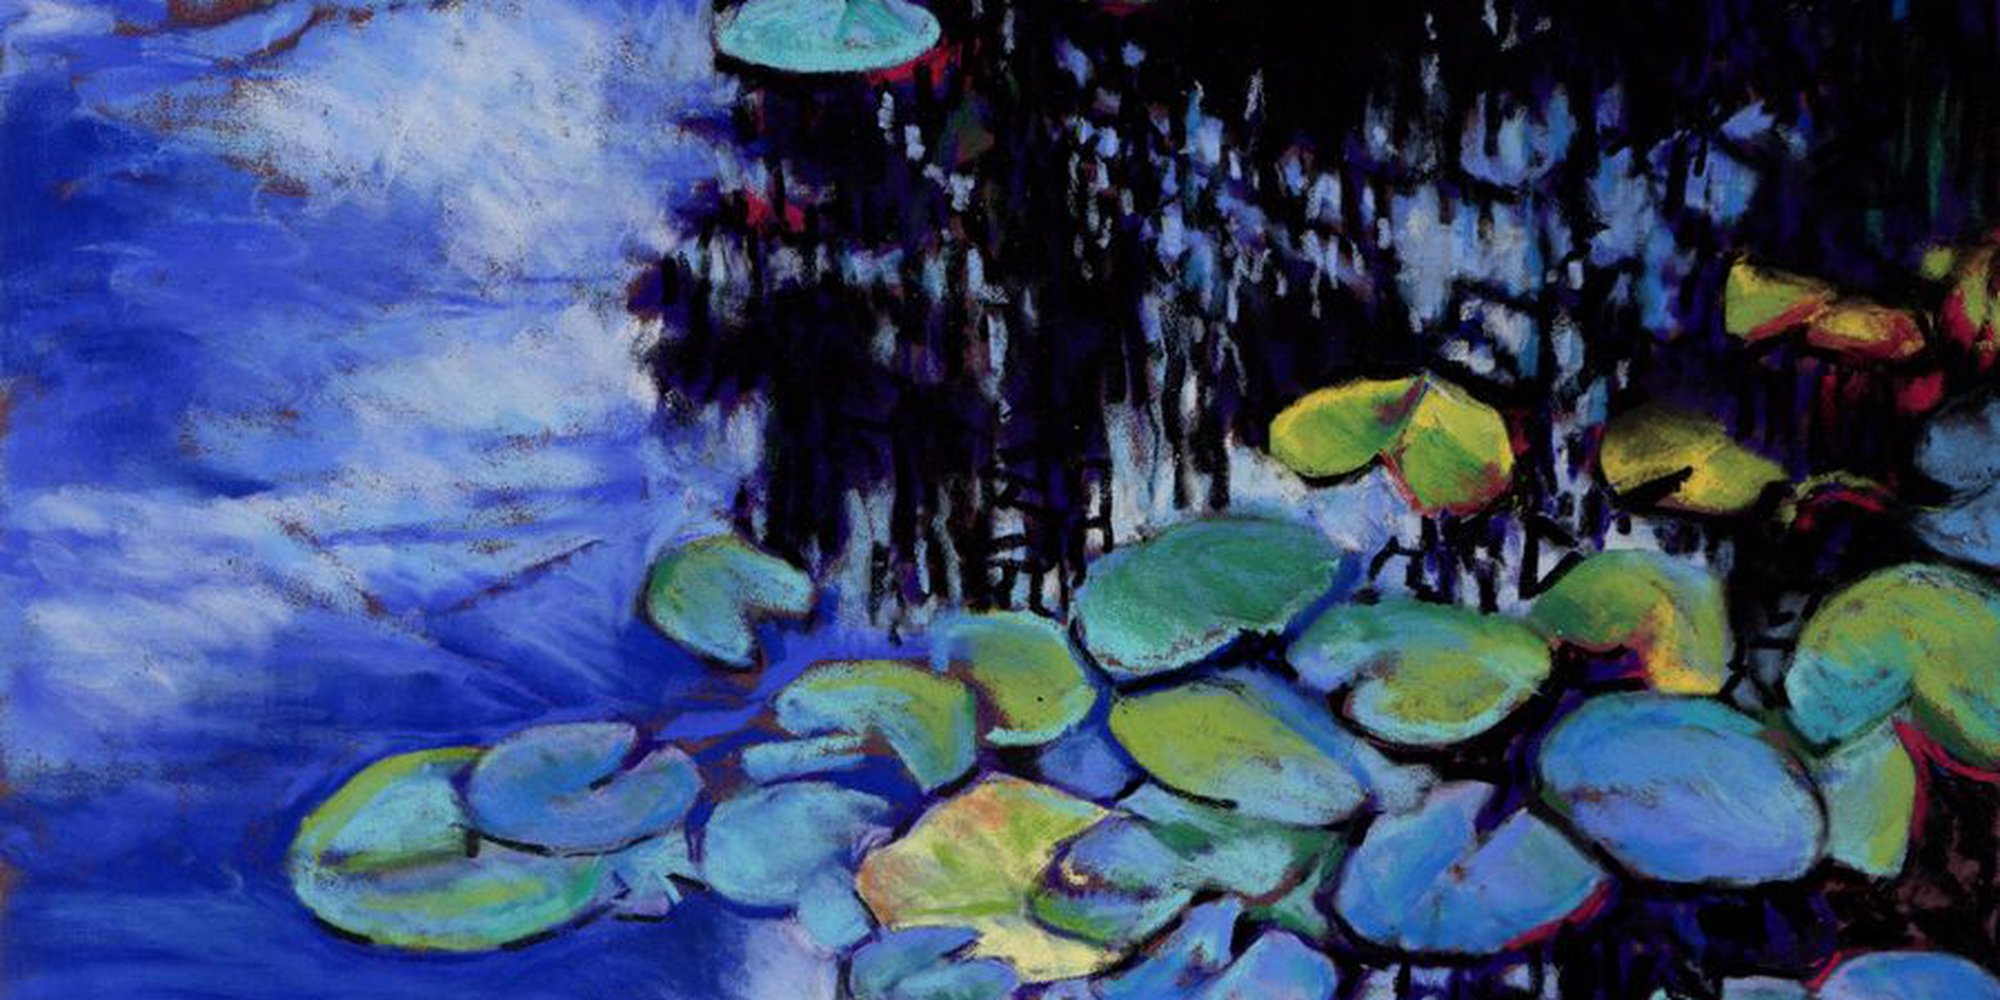 """Art of the Day: """"Monet's Garden - Lily Pads, 2017"""" by Zoe Elizabeth Norman"""